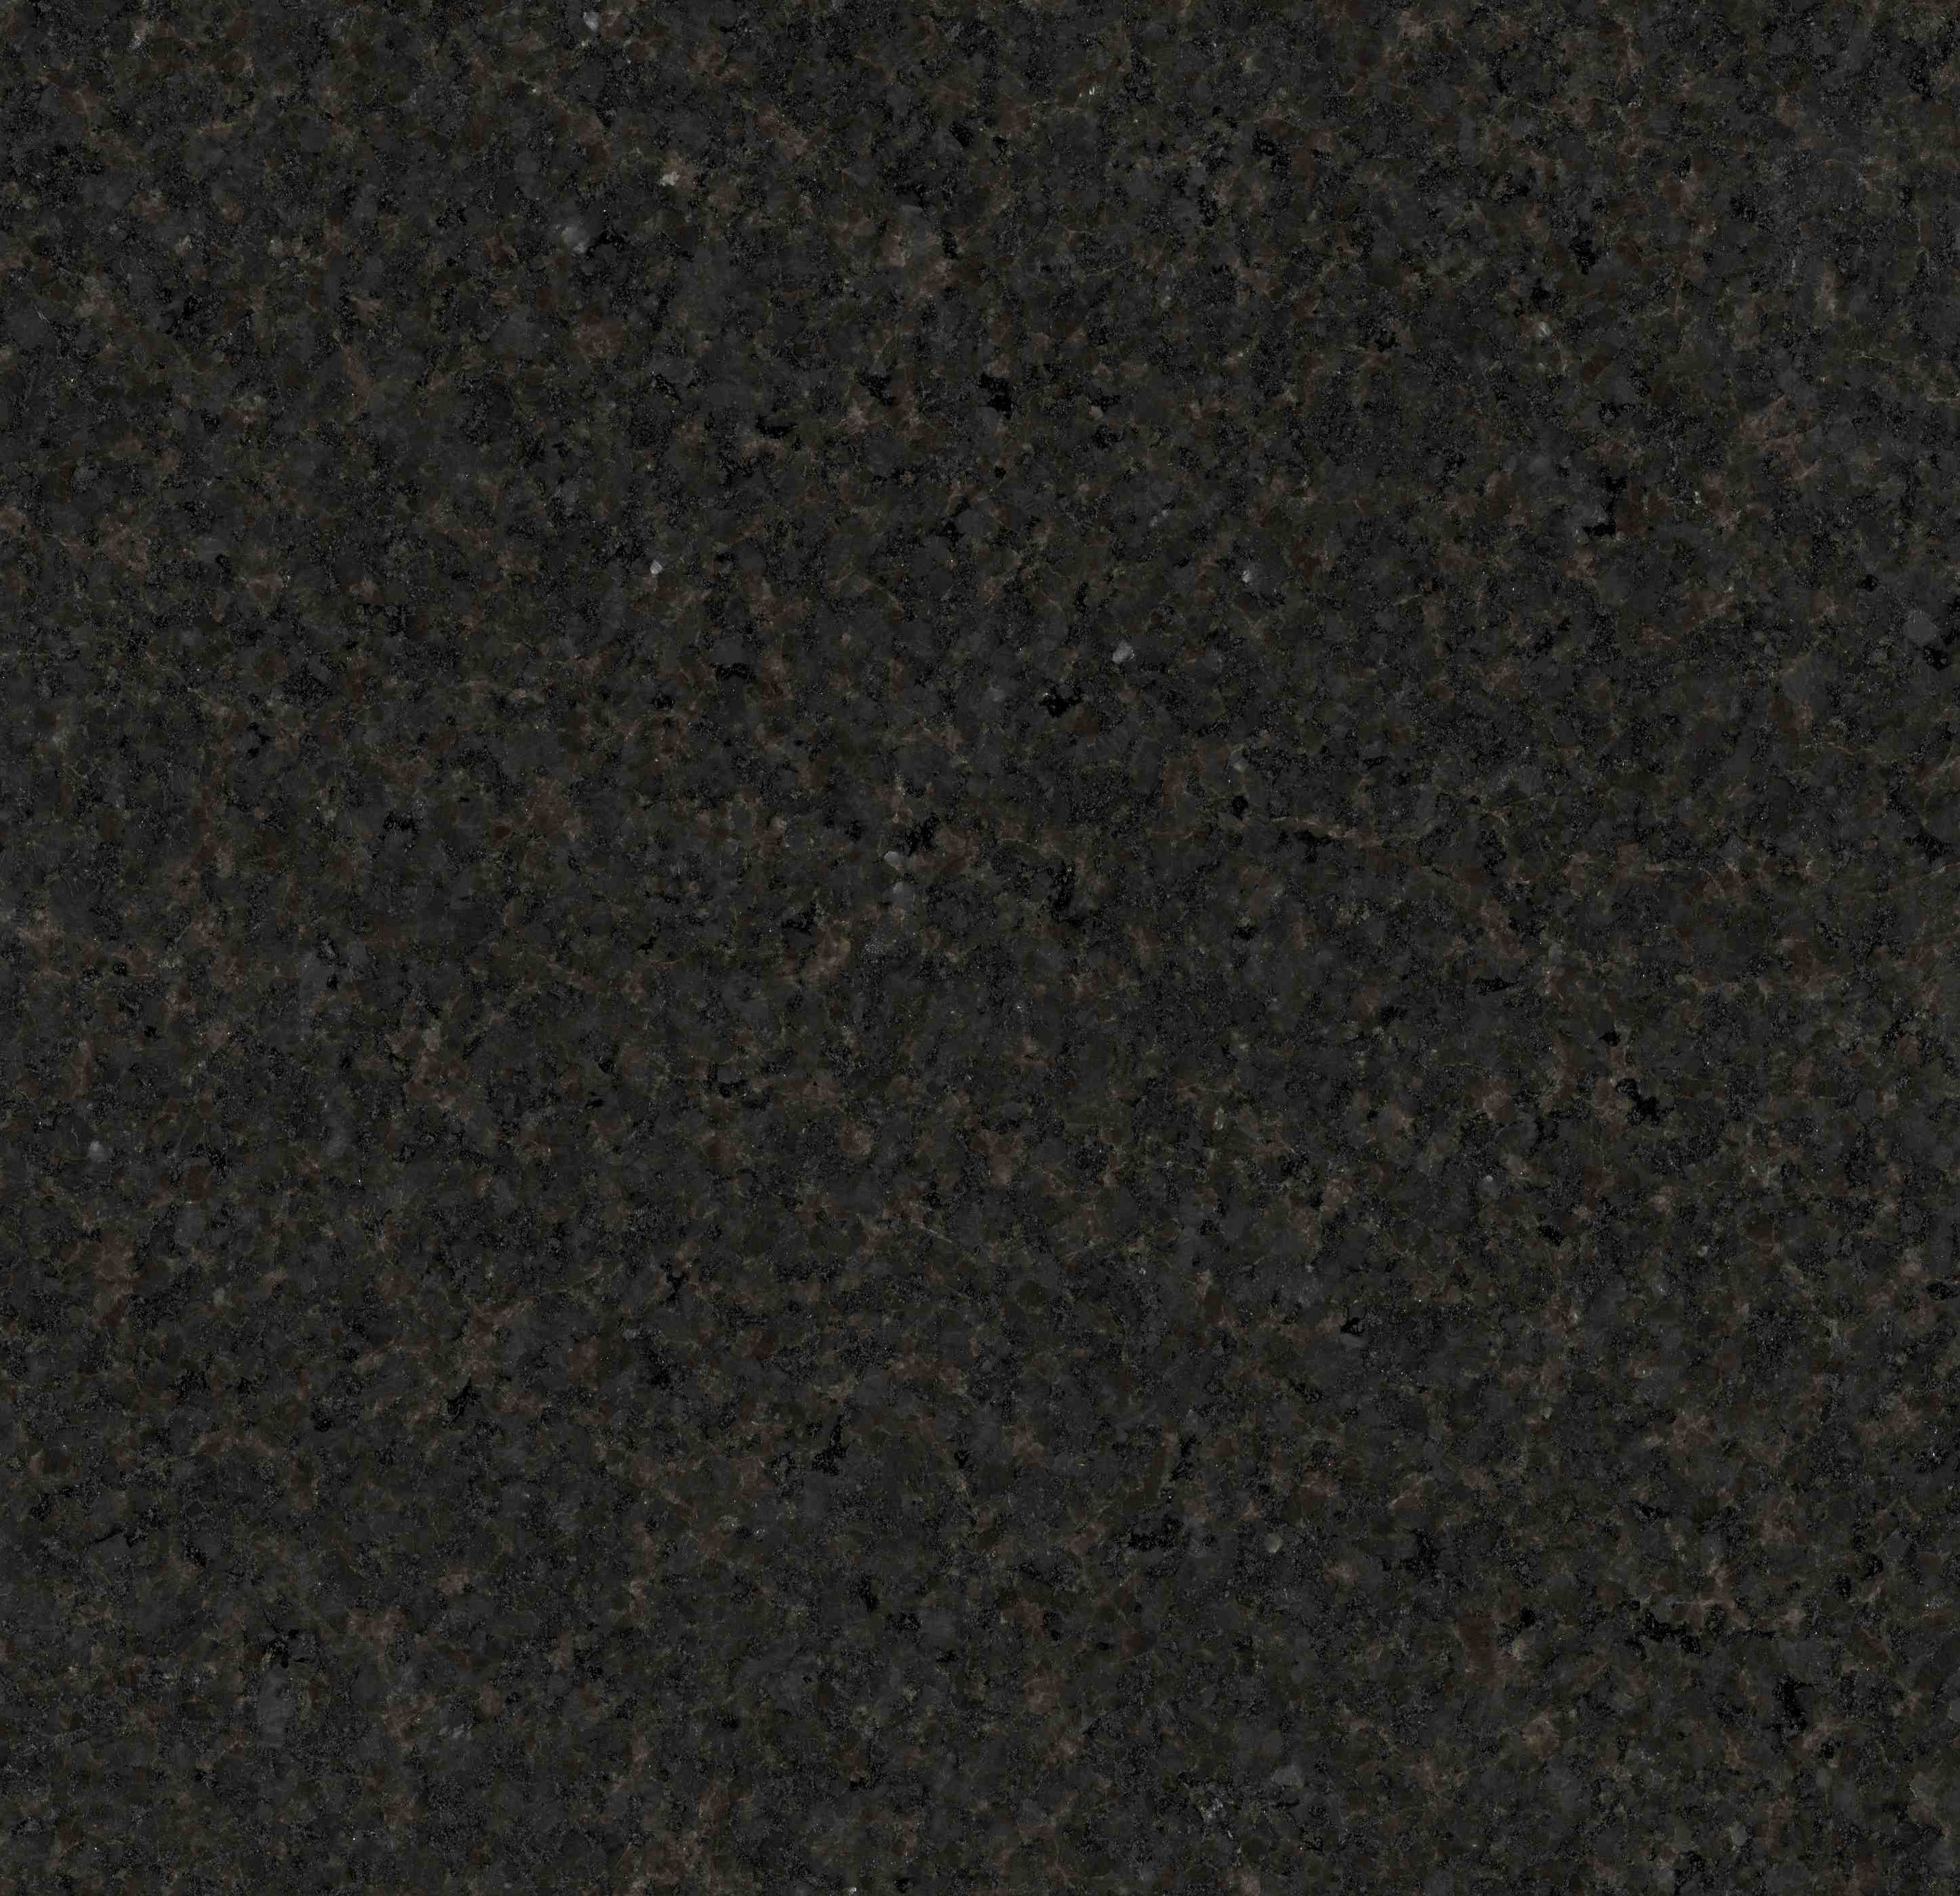 Indian black pearl granite stone ideas stone floor Black pearl granite